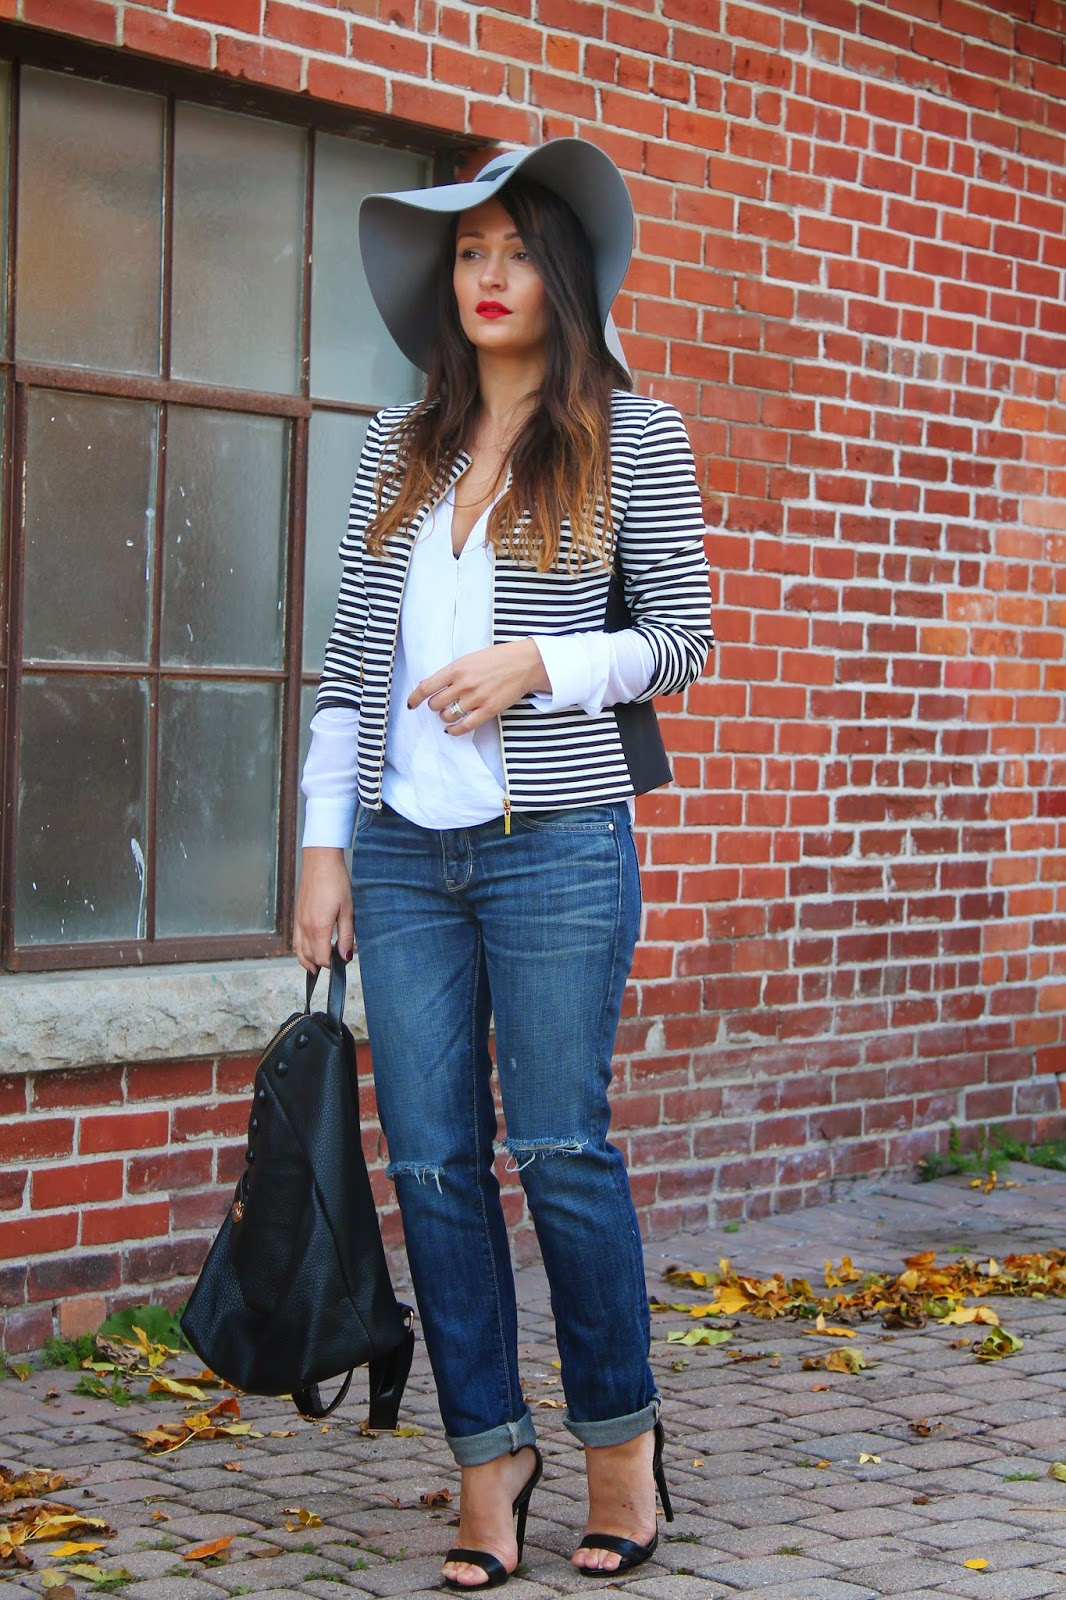 Stripped blazer, gray chapeau, hat outfit, how to style boyfriend jeans, gap jeans, blogerke, iscepane farmerke, crno bele pruge, fall outfit, toronto street style, canadian fashion blogger